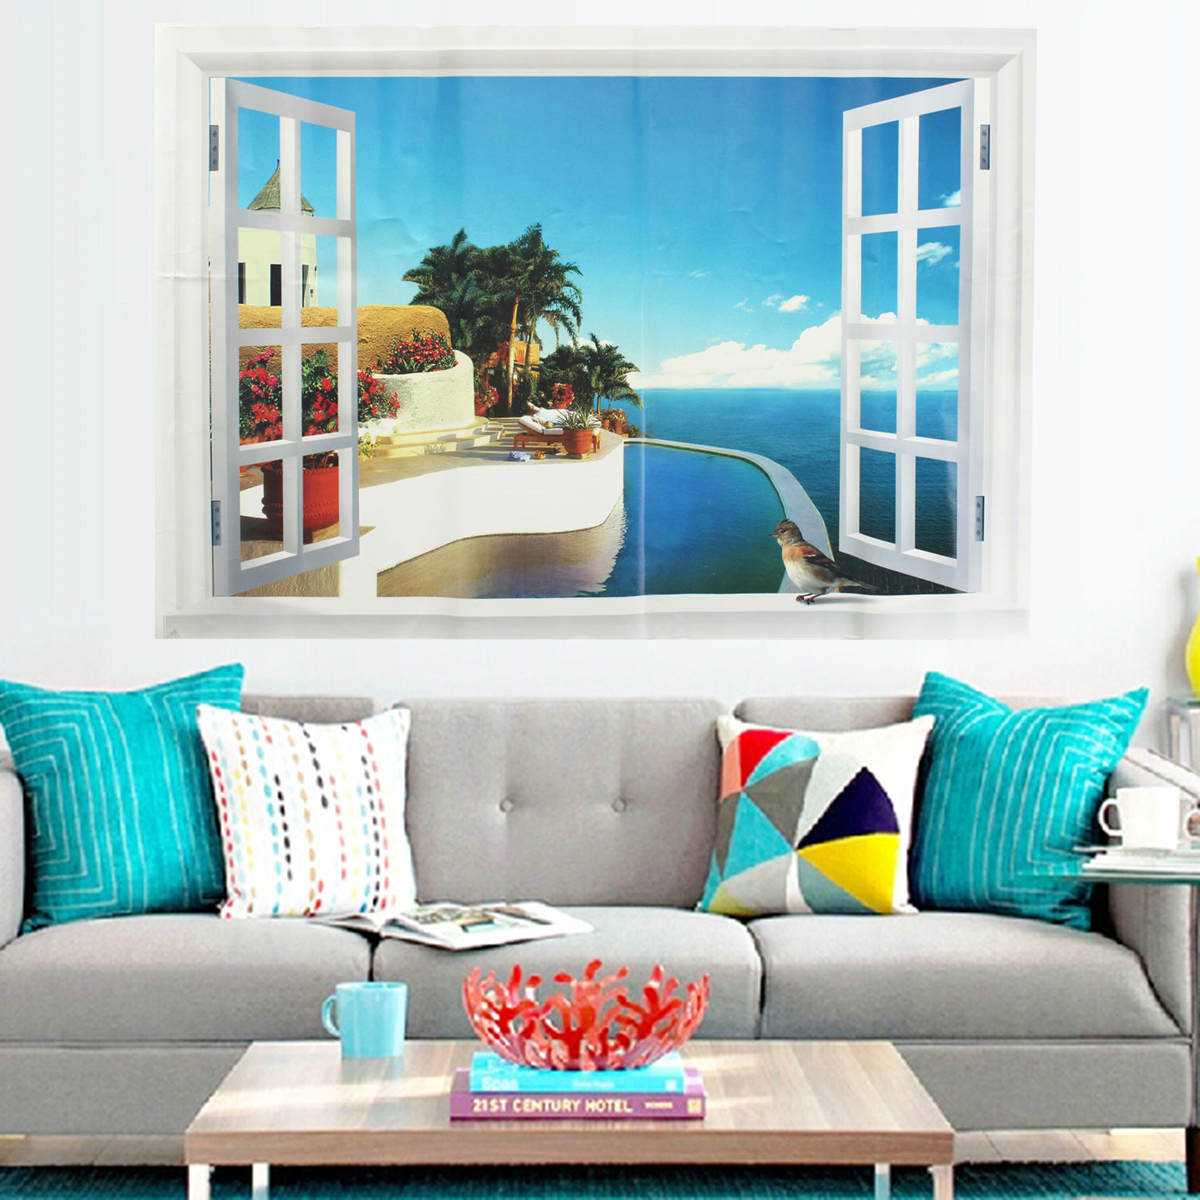 Home decor 3d window decal wall sticker exotic beach view for Home decor 3d